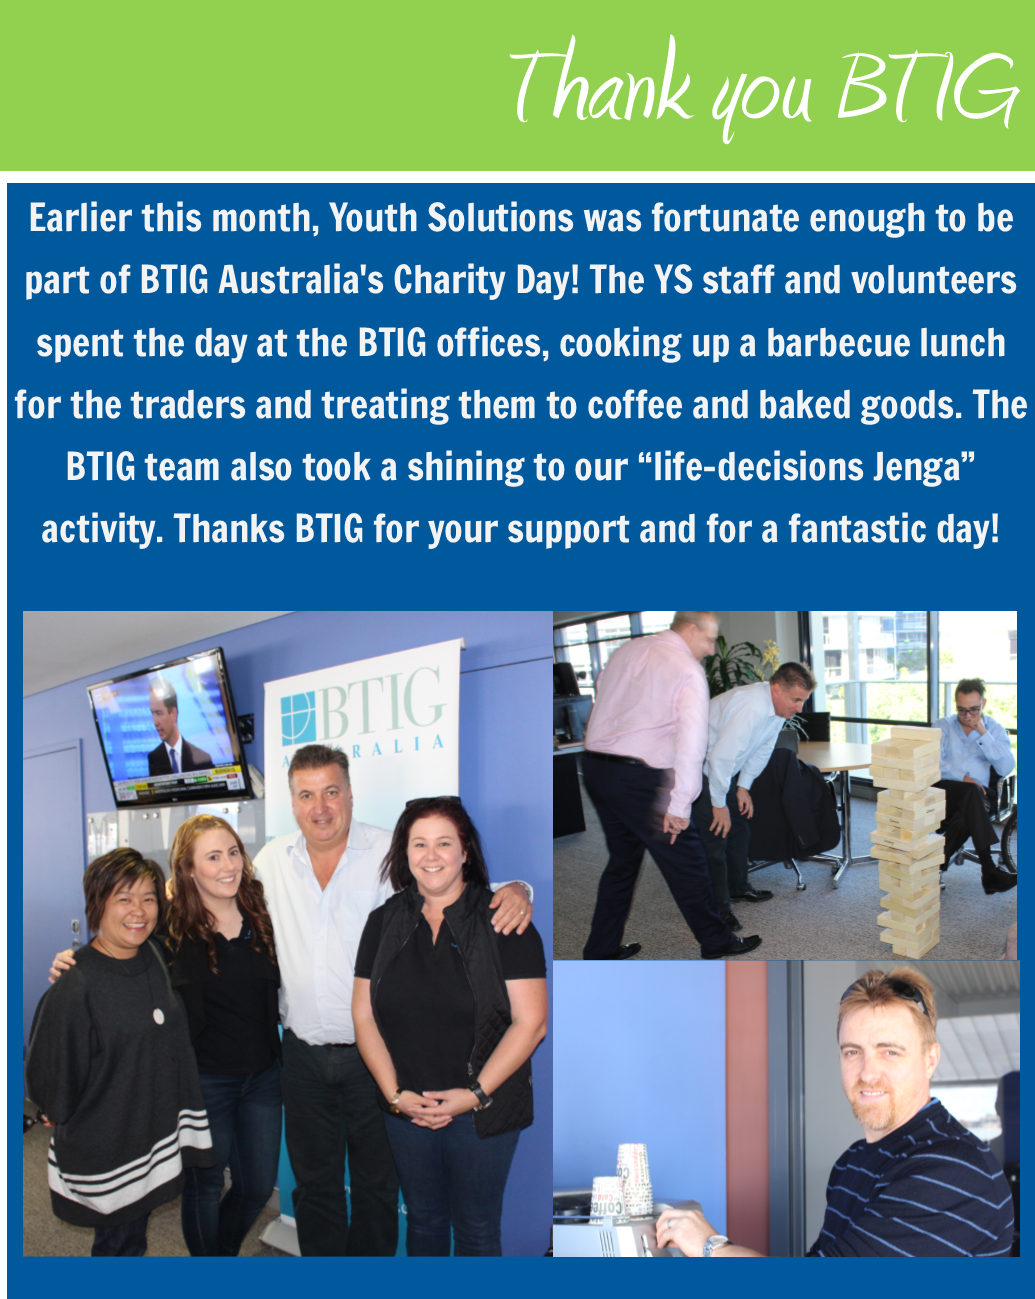 Youth Solutions takes part in BTIG Charity Day